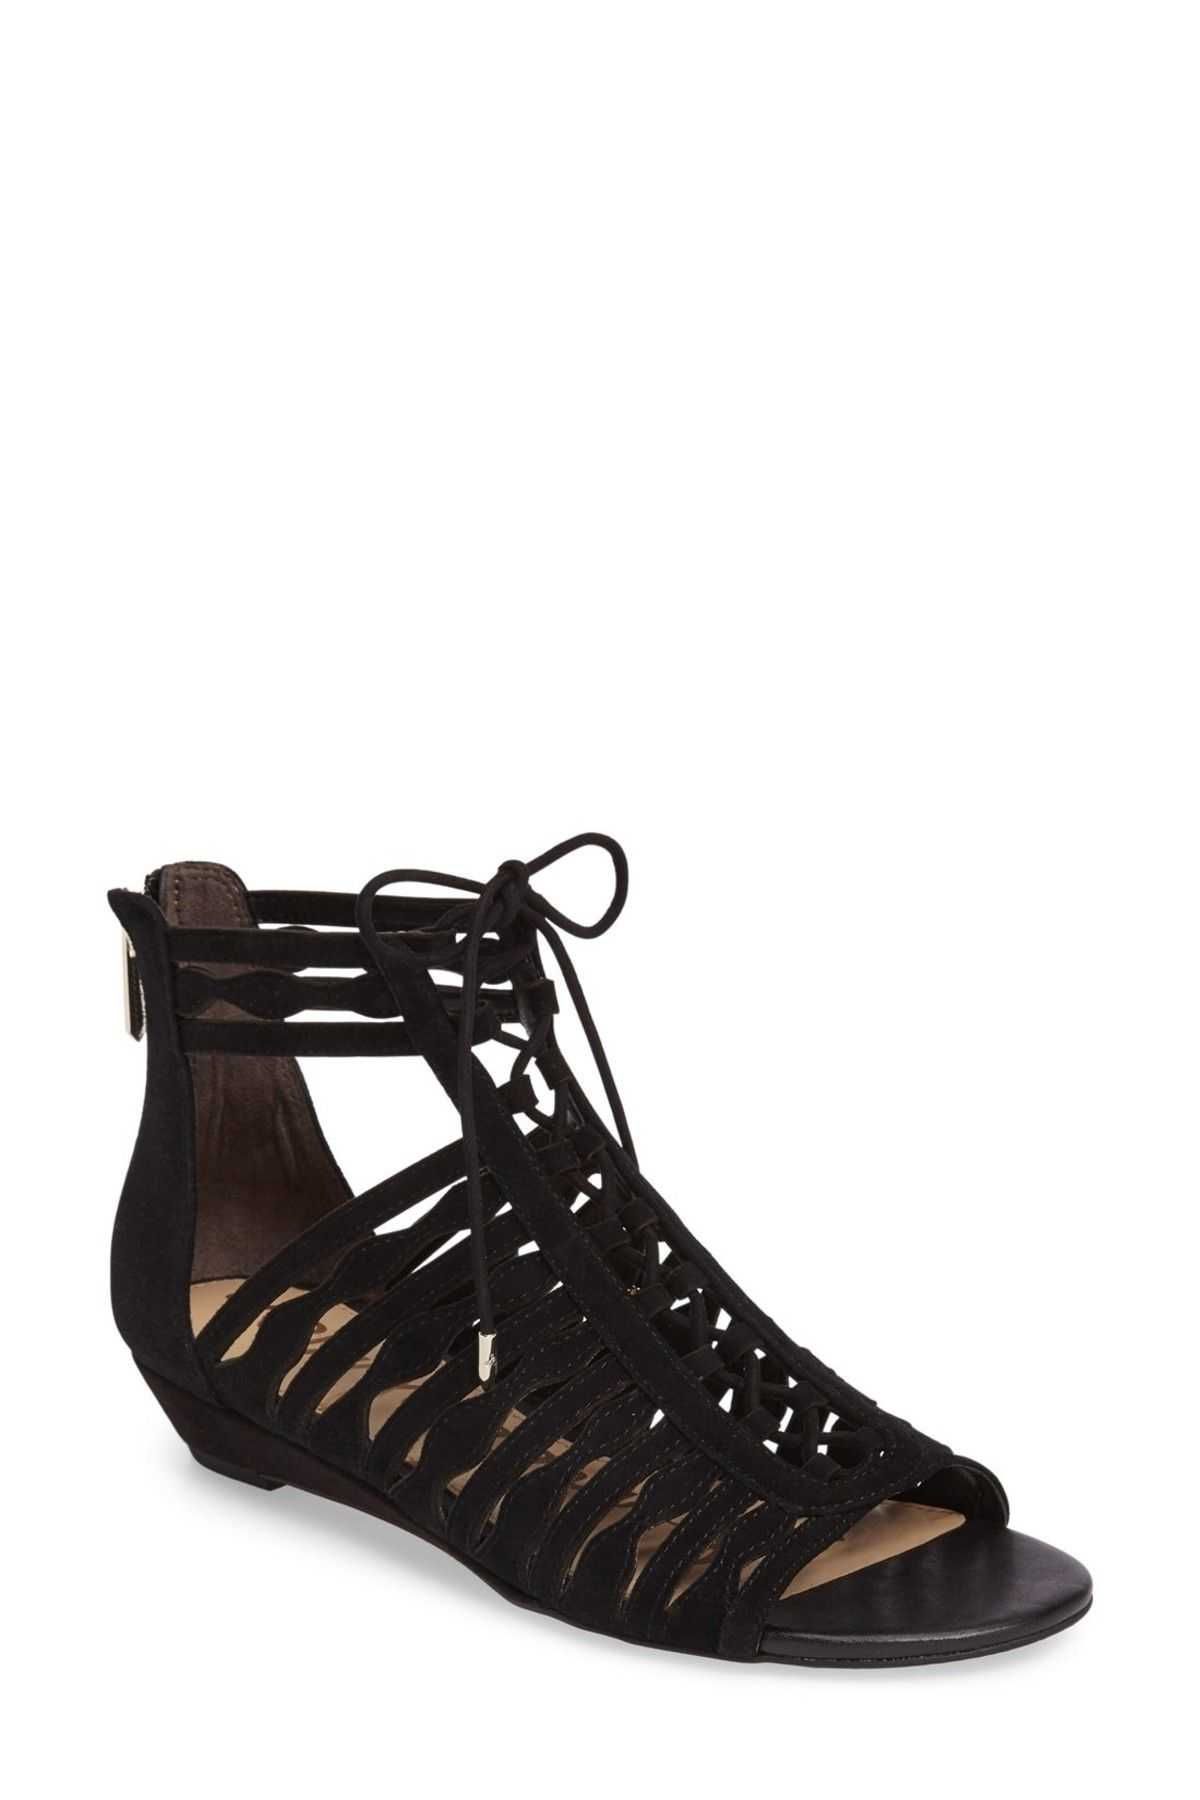 a442e4000 Image of Sam Edelman Daleece Lace-Up Sandal